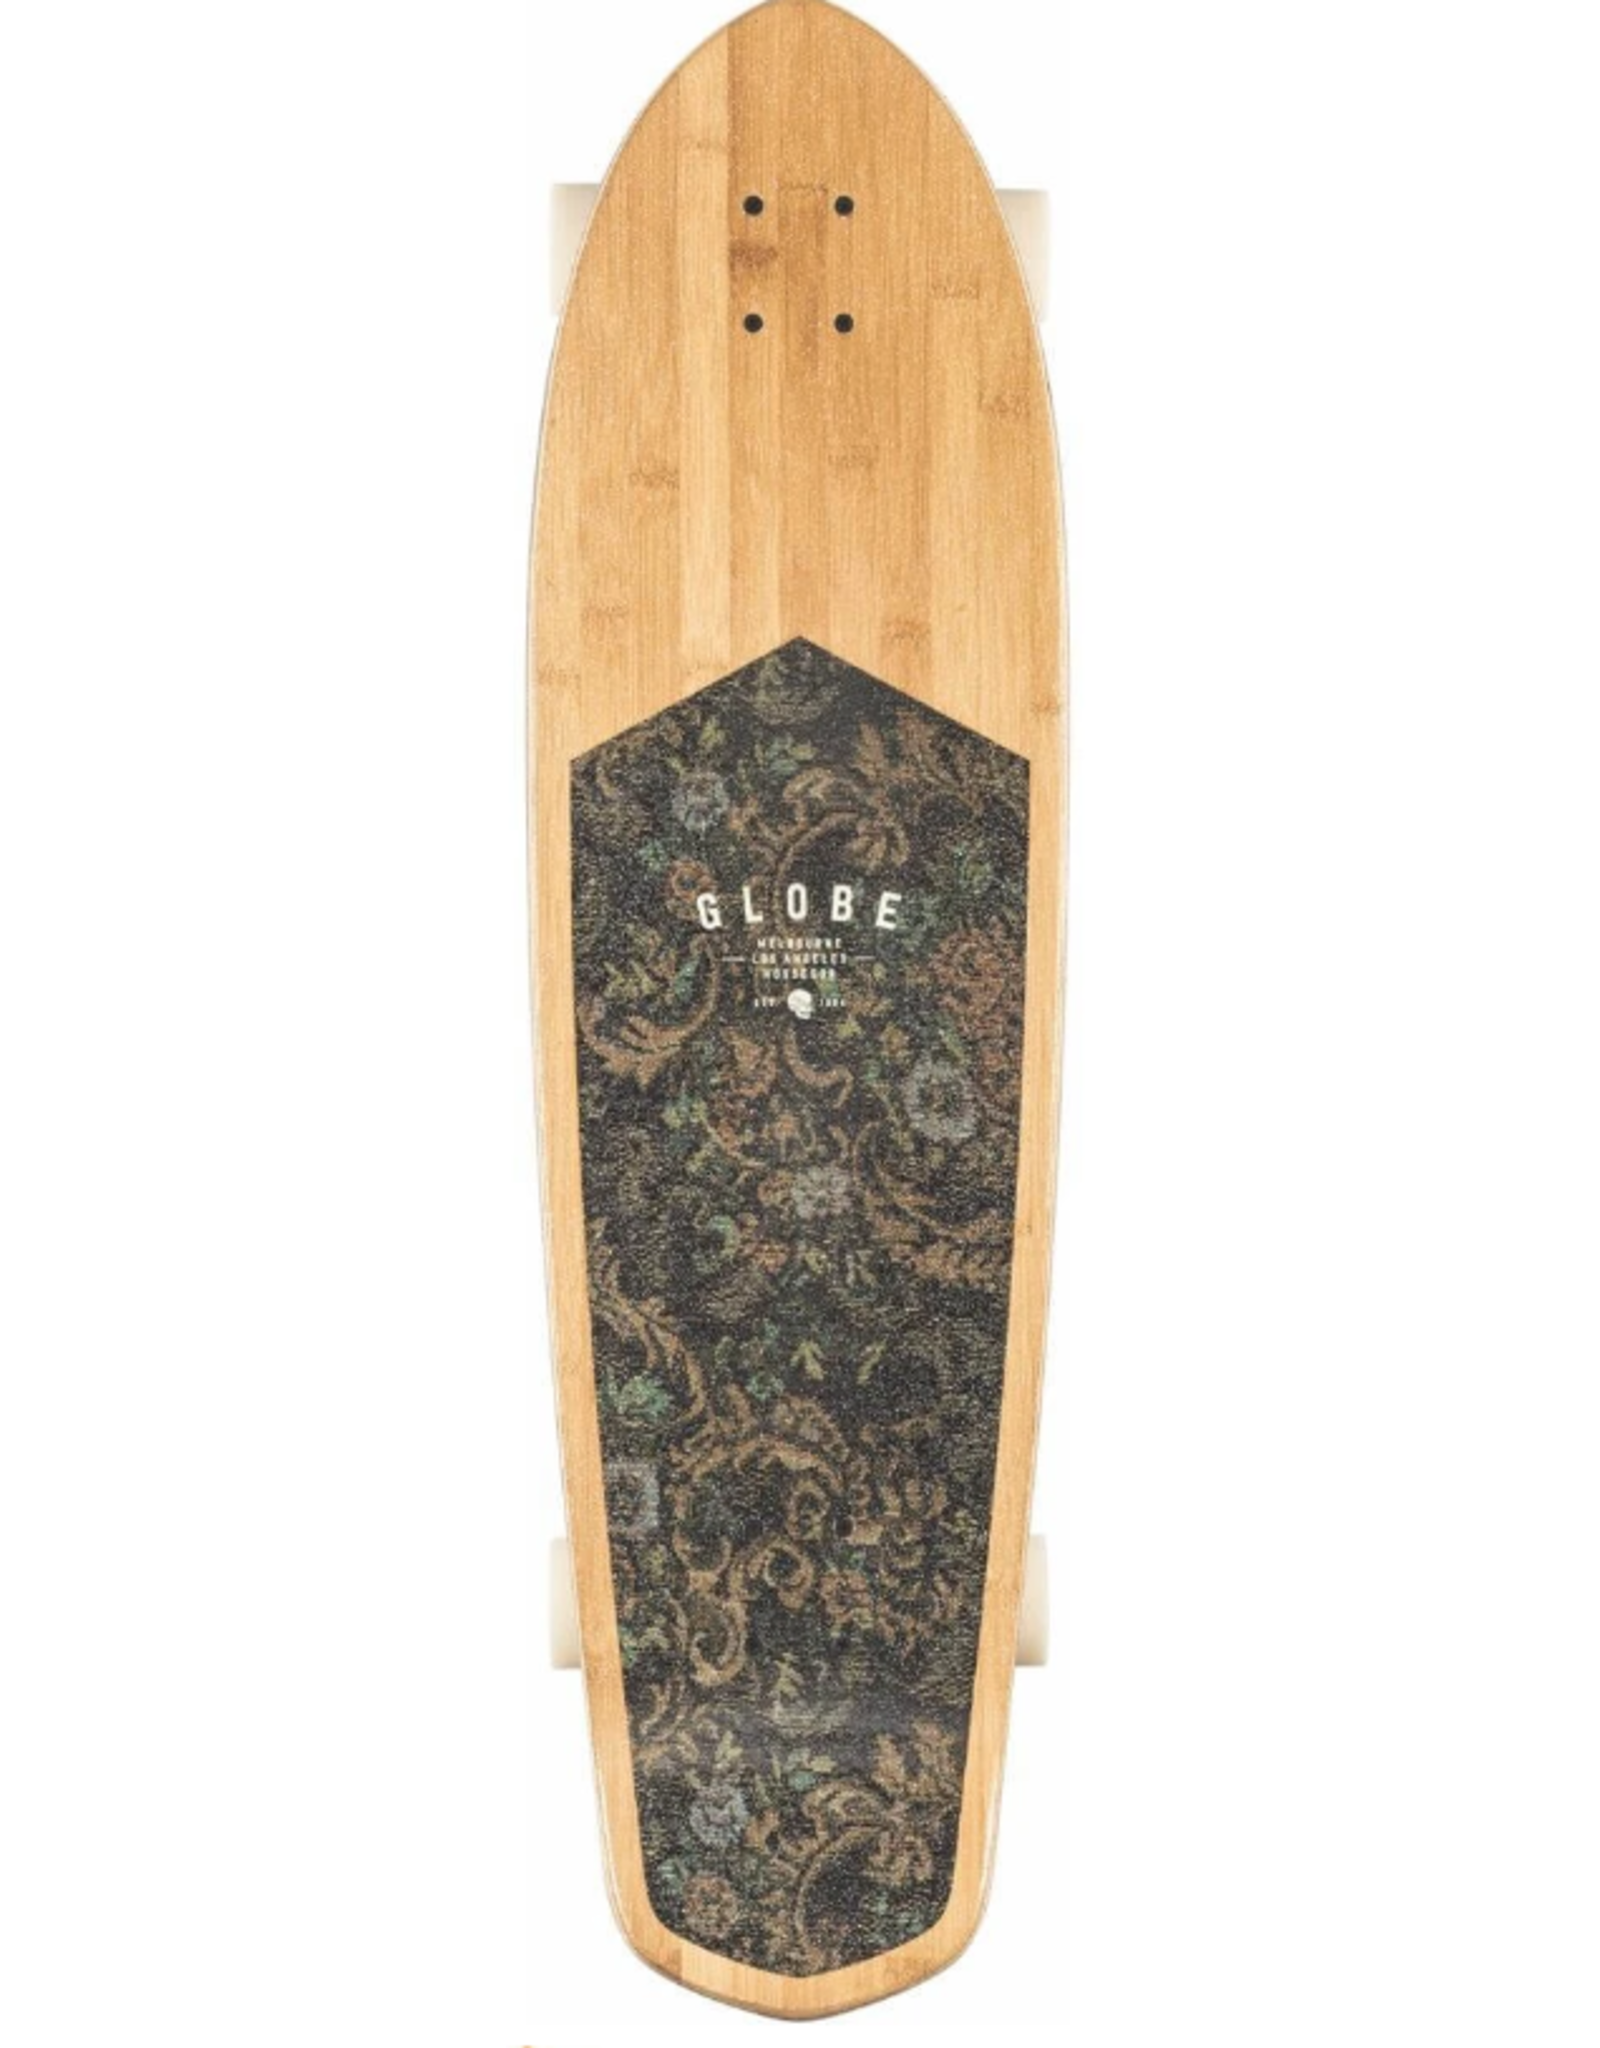 GLOBE BLAZER XL BAMBOO FLORAL COUCH LONGBOARD COMPLETE